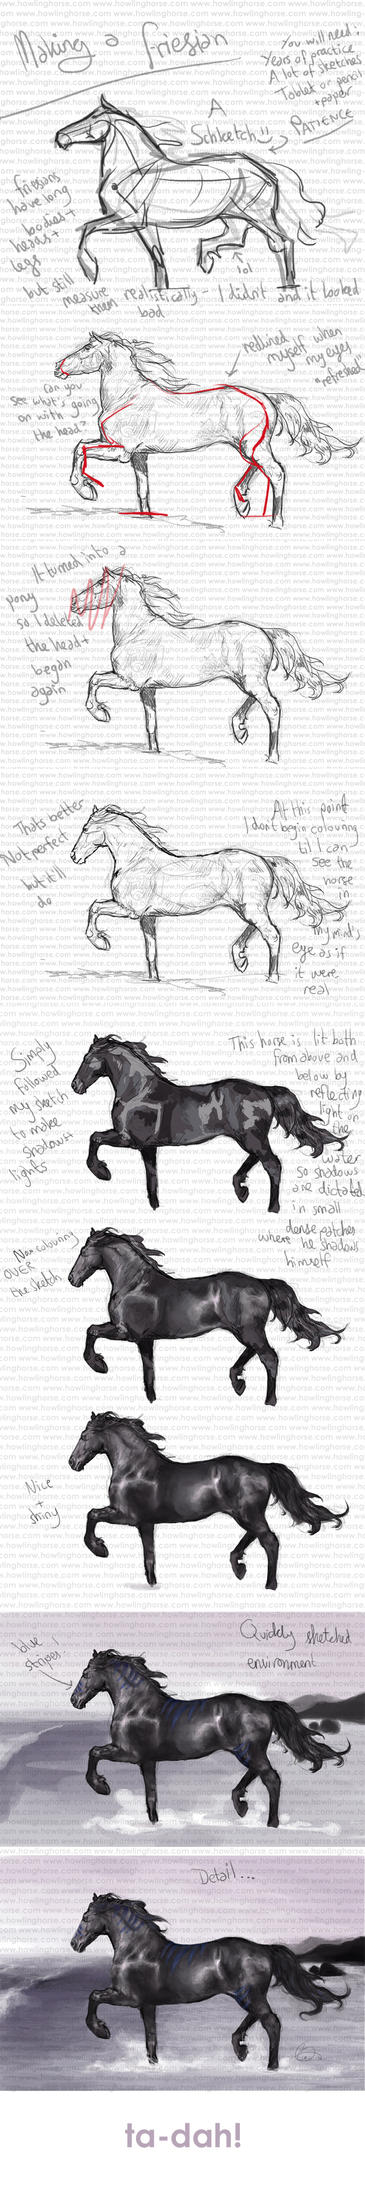 How To Make A Friesian By Howlinghorse Drawing A Horse Isn't Easy But  Following